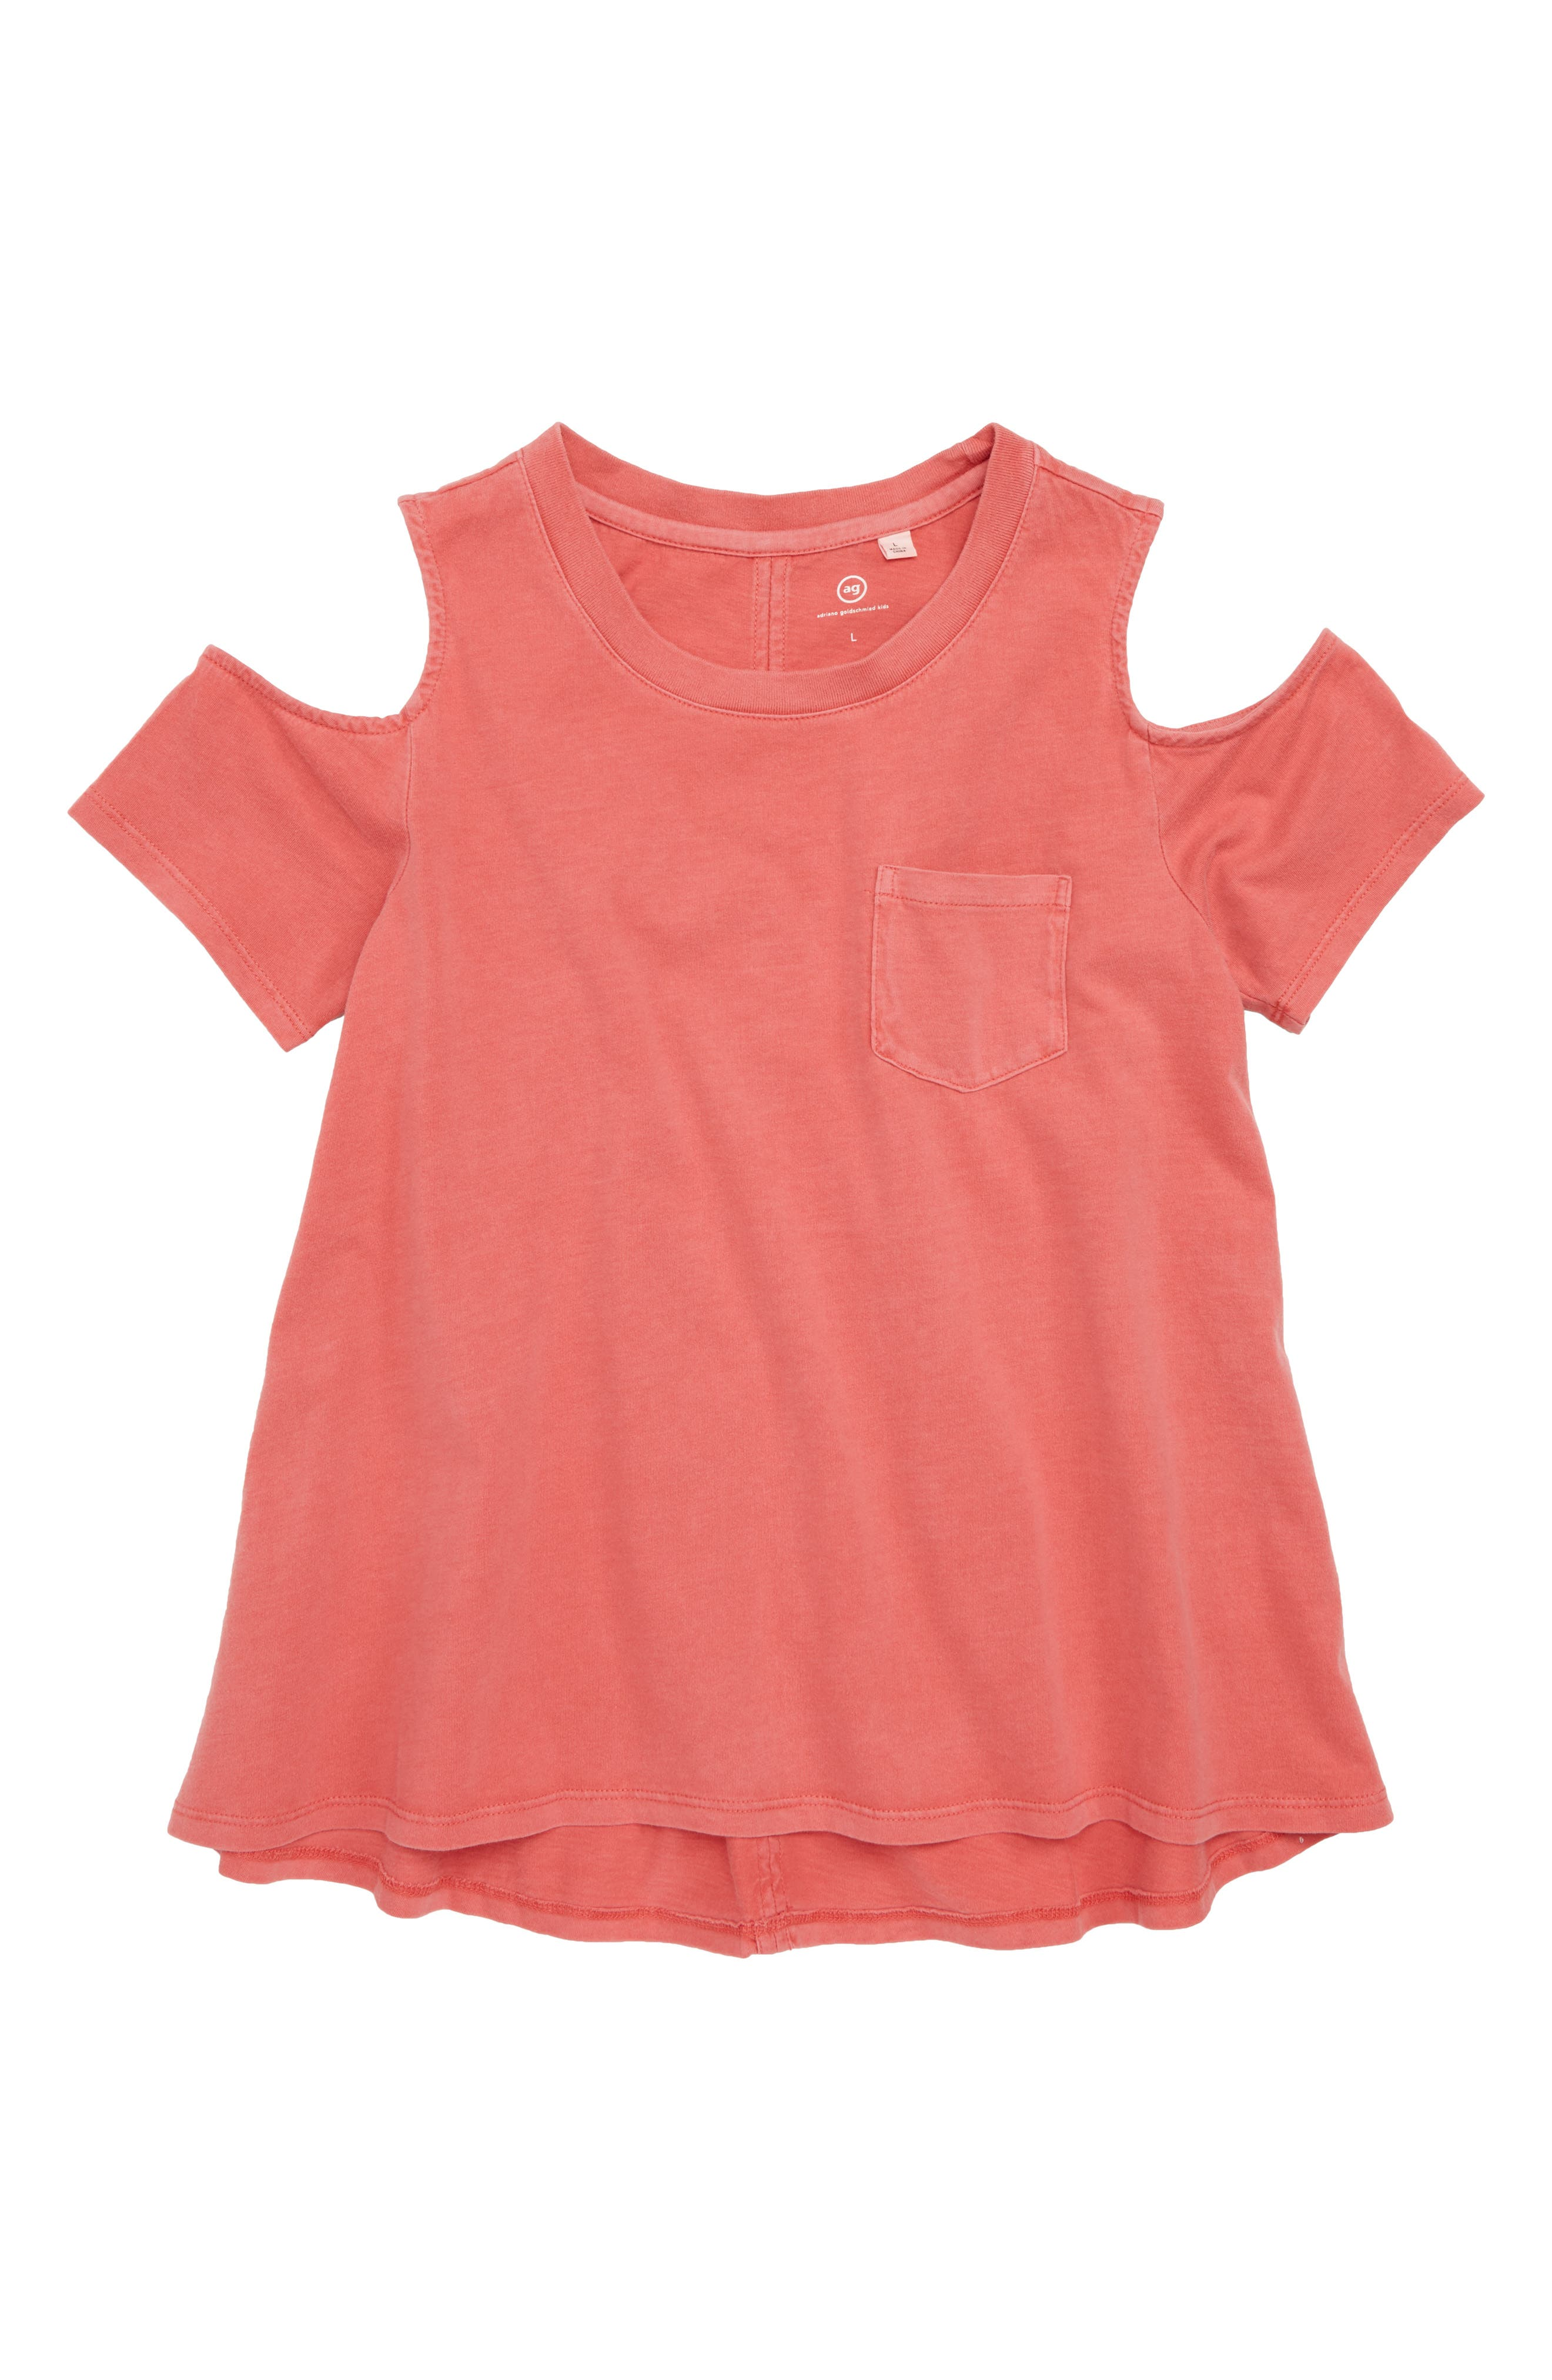 adriano goldschmied kids Tess Cold Shoulder Top,                         Main,                         color, 620